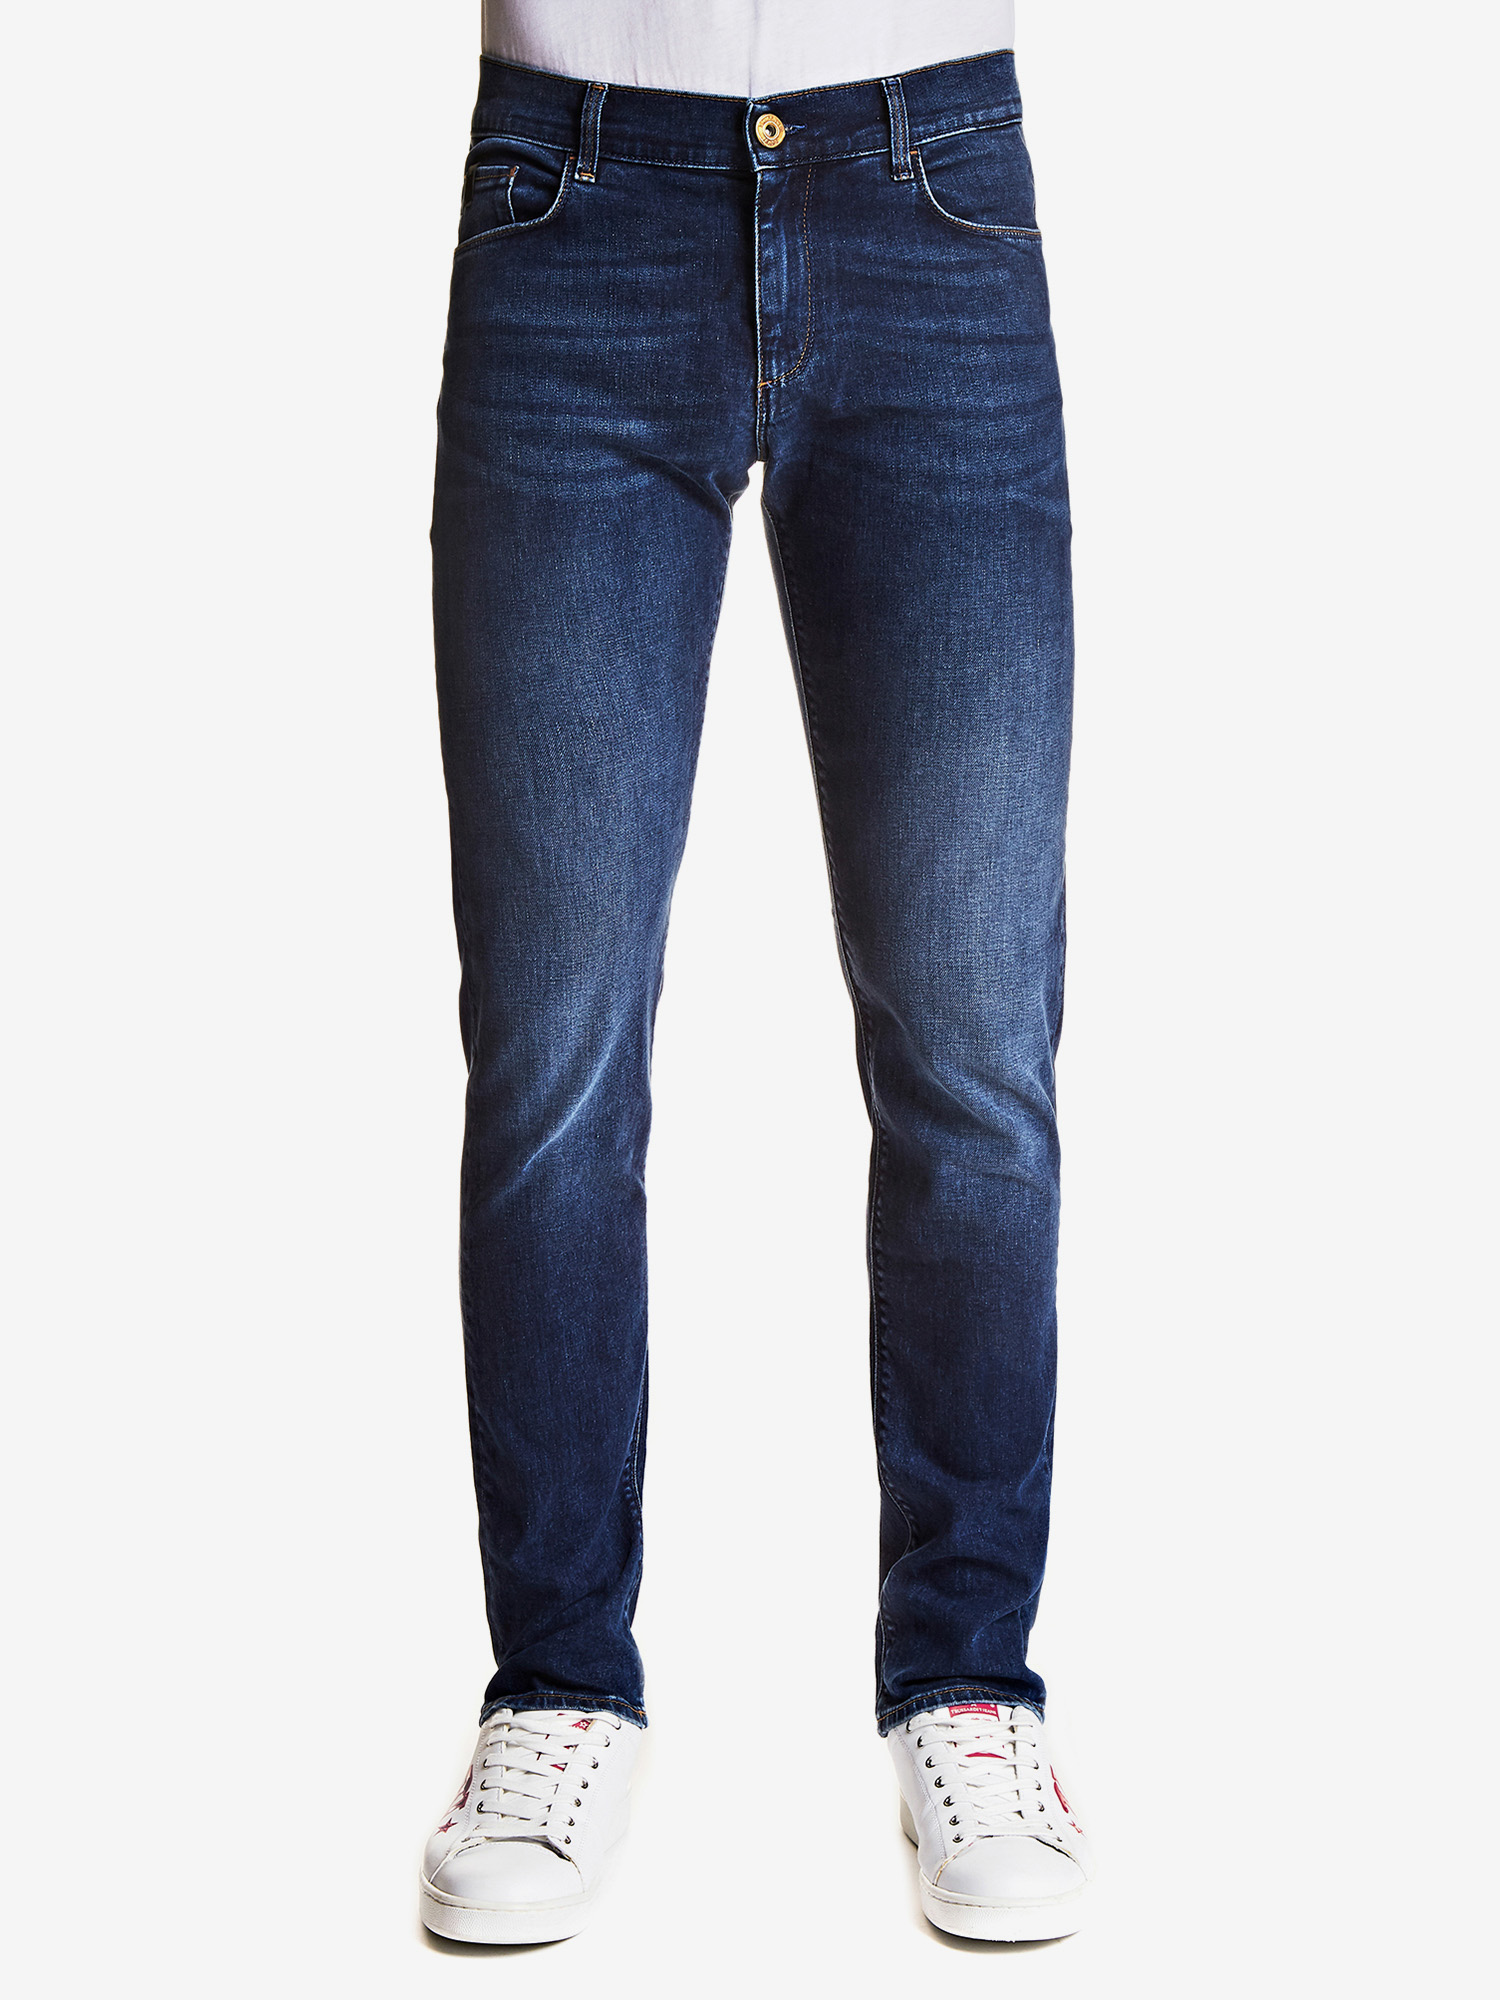 Džíny Trusssardi 370 Close Fantasy Denim Hiver Bicolor Super Stretch Modrá